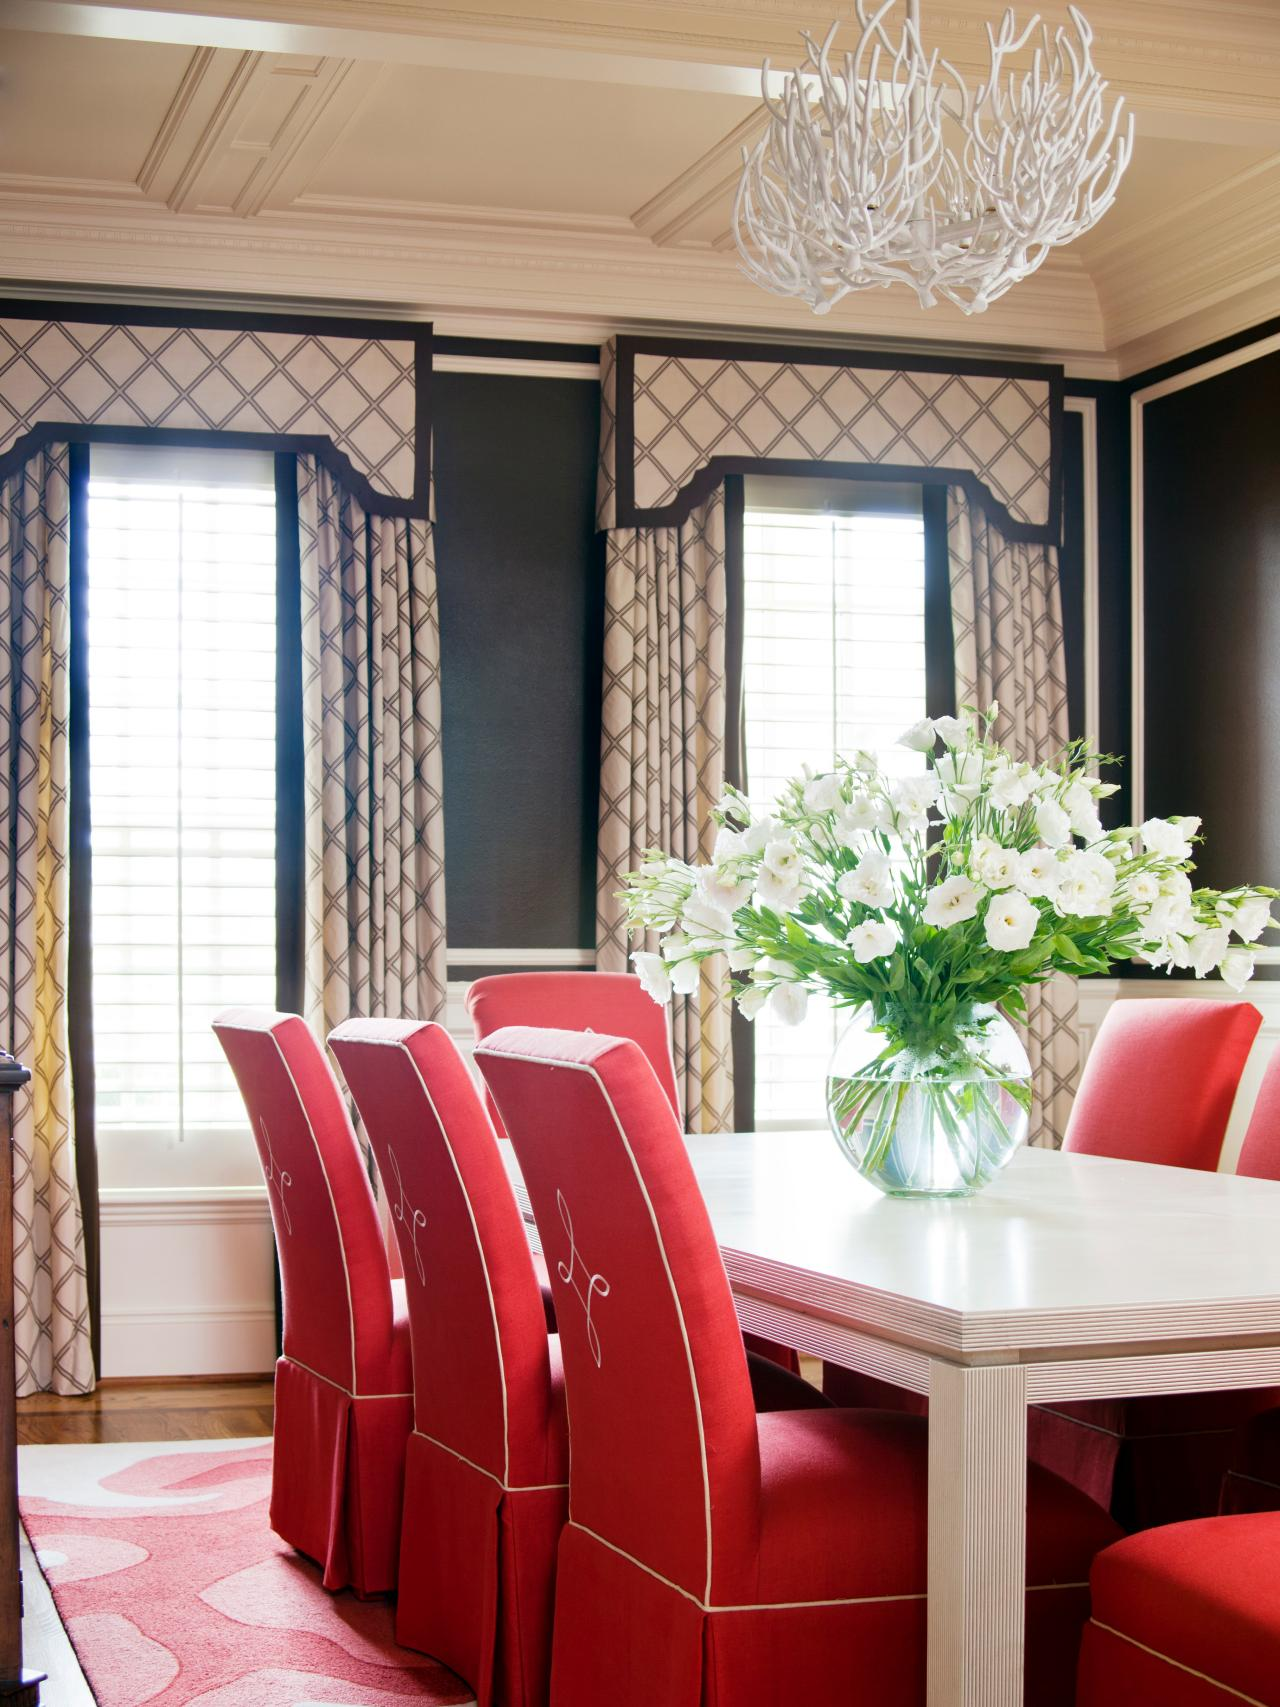 The Best Window Treatments For Your Style The Shade Company